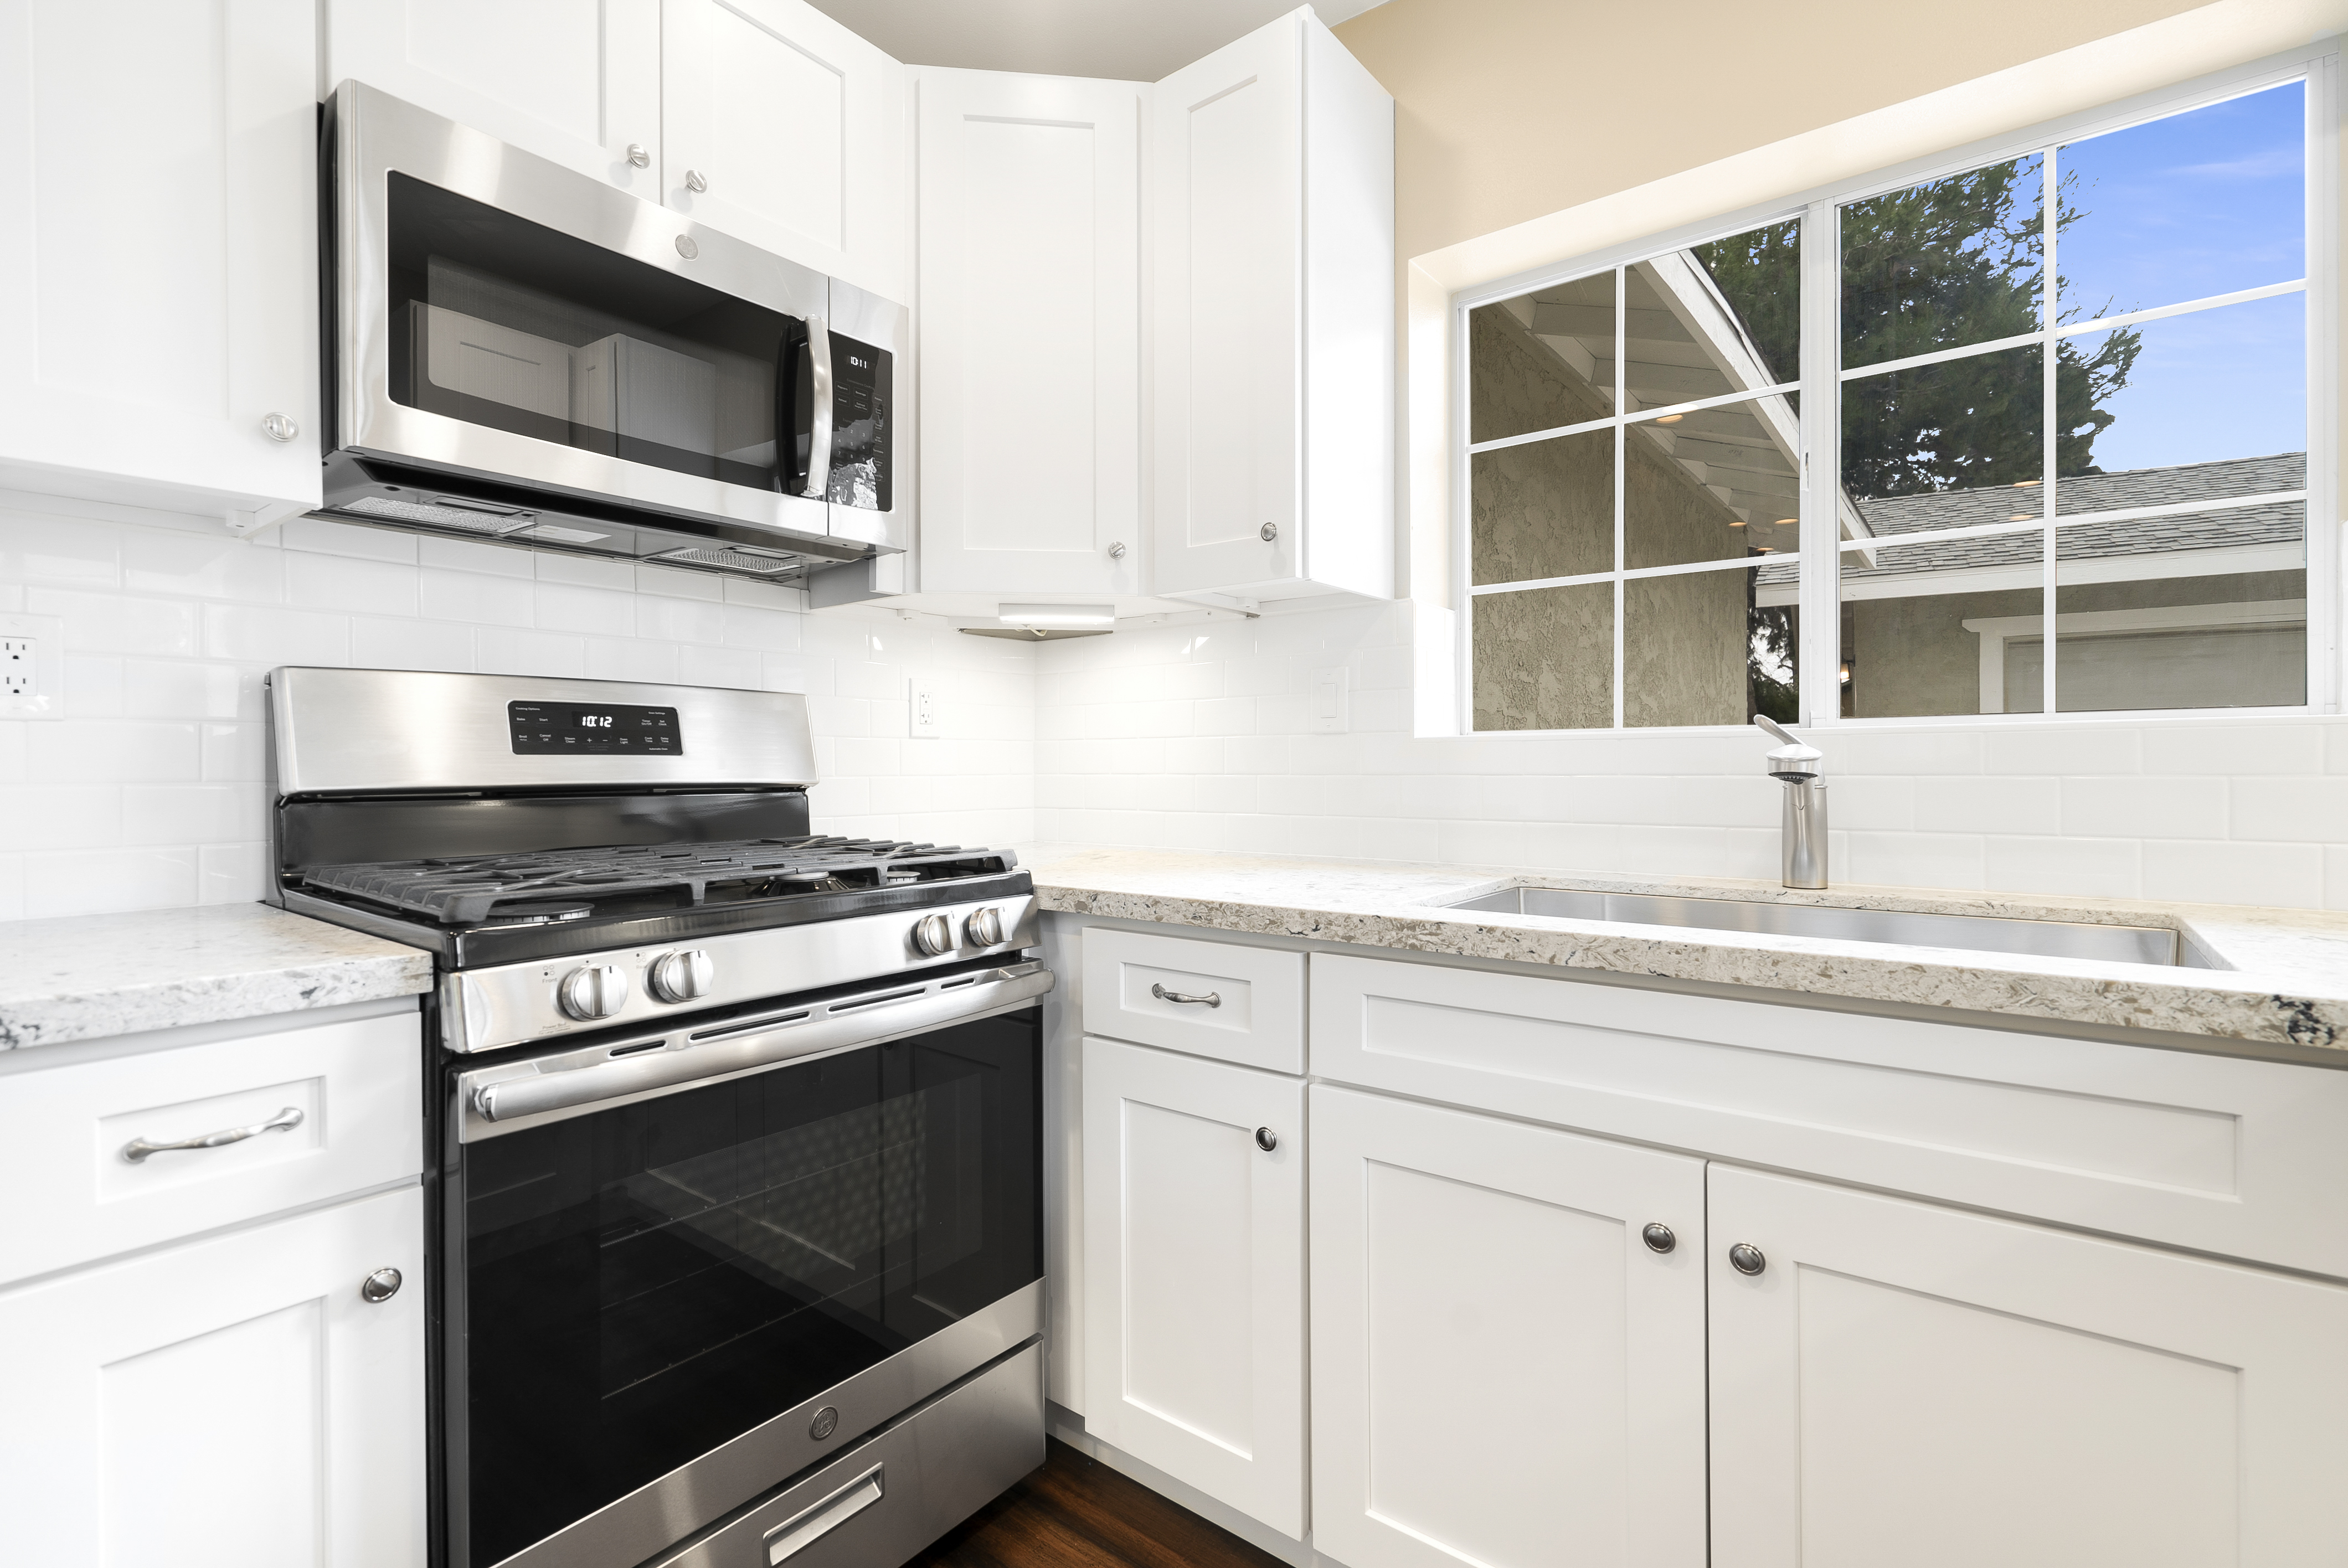 BRAND NEW gas stove and built-in microwave, as well as brand new dishwasher too.